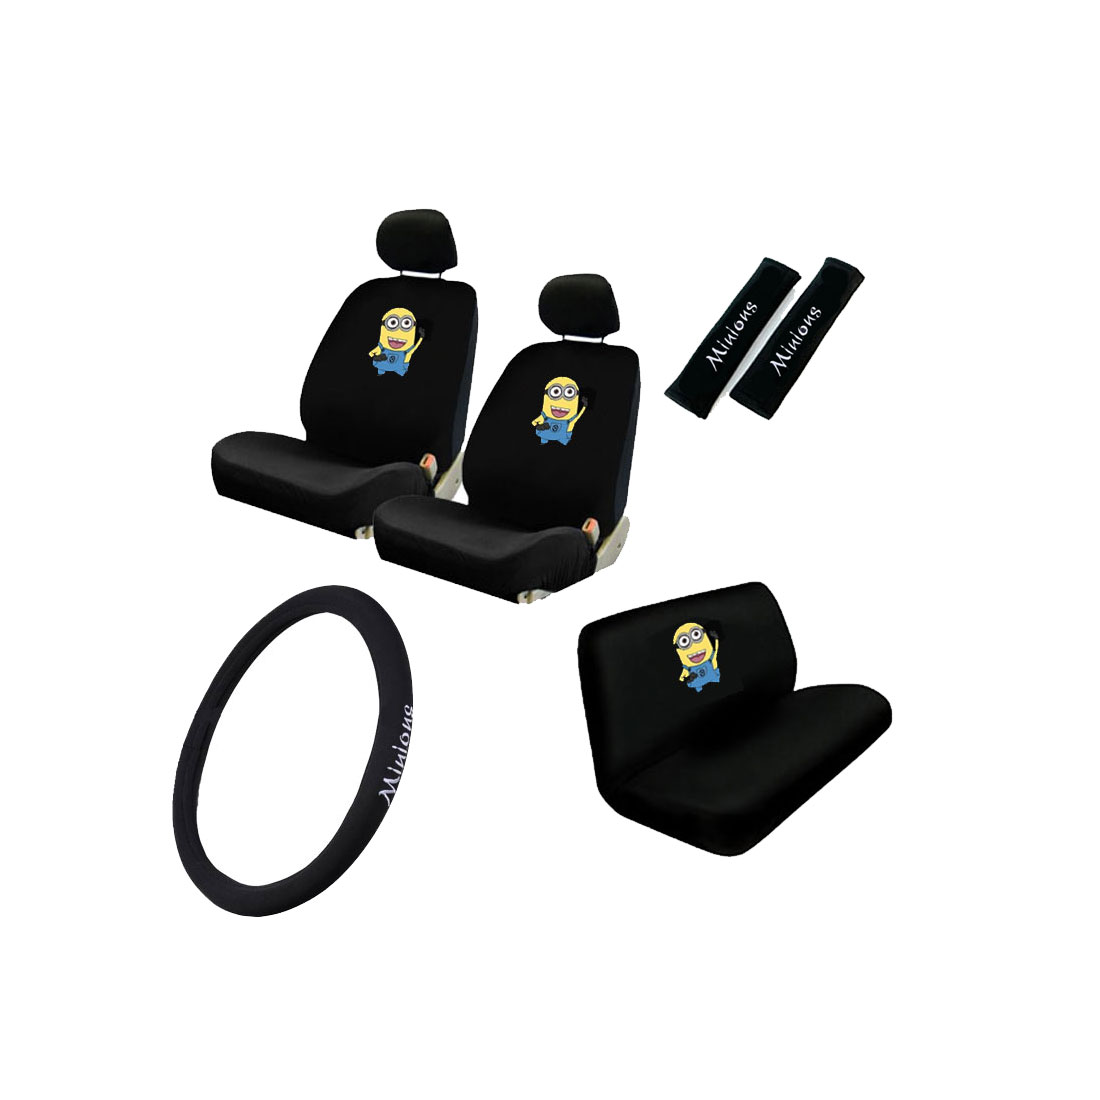 New Set Despicable Me Minion Car Seat Covers Steering